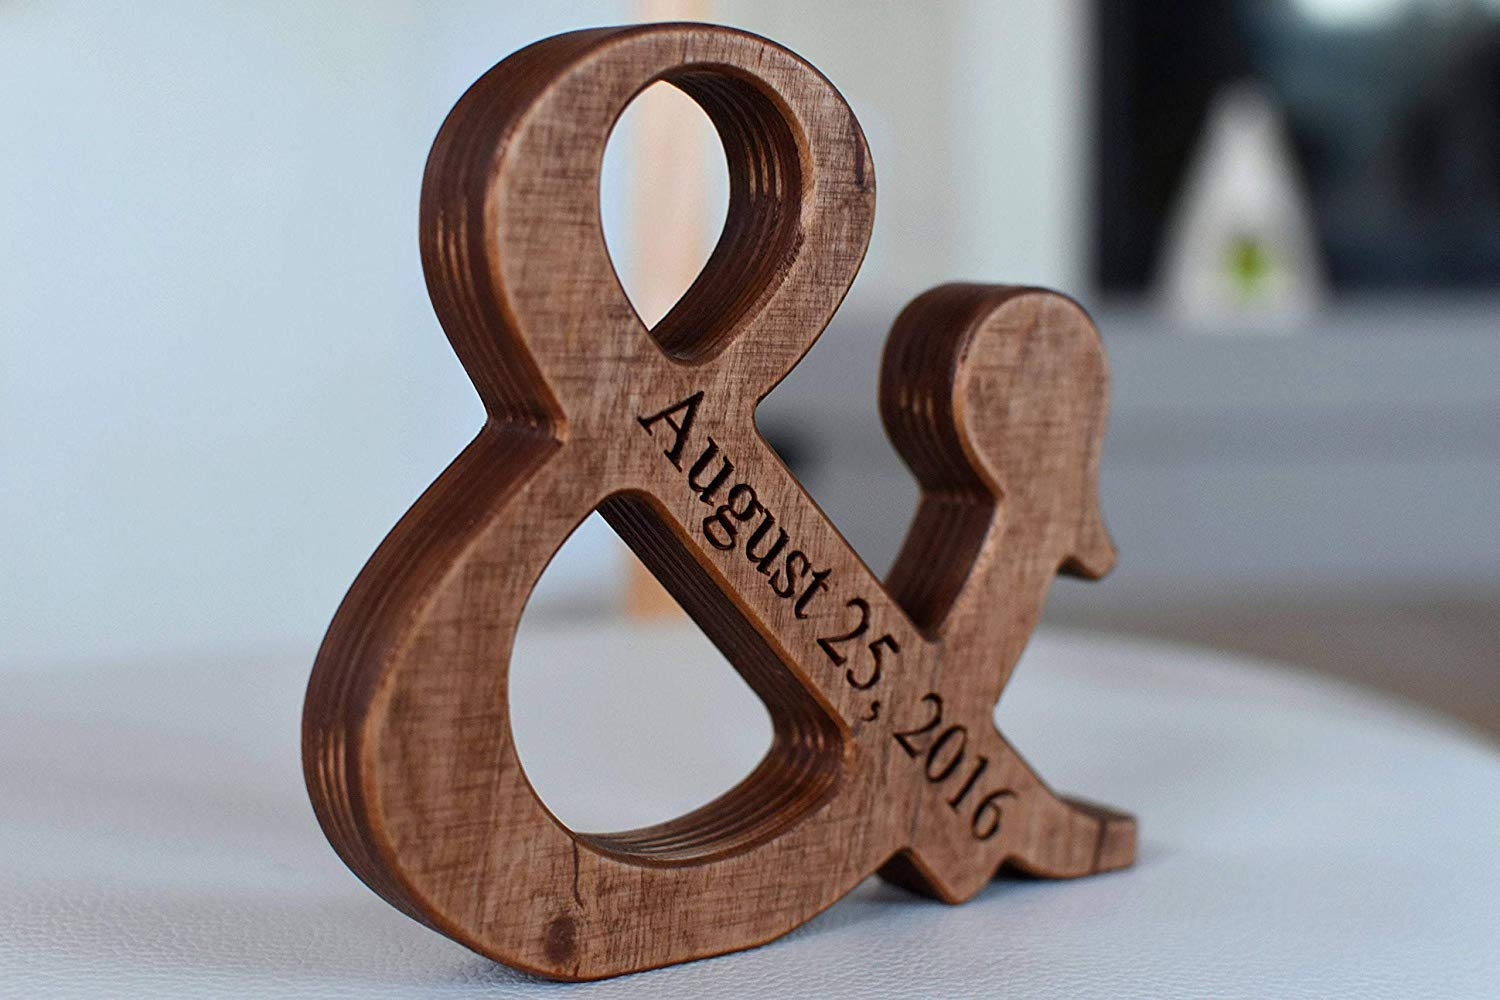 5'' Personalized Wood Ampersand - Free Standing Wooden Letter Ampersand - Valentines Day or Wedding Gift - Home Decor and 5th Wedding Anniversary Gift